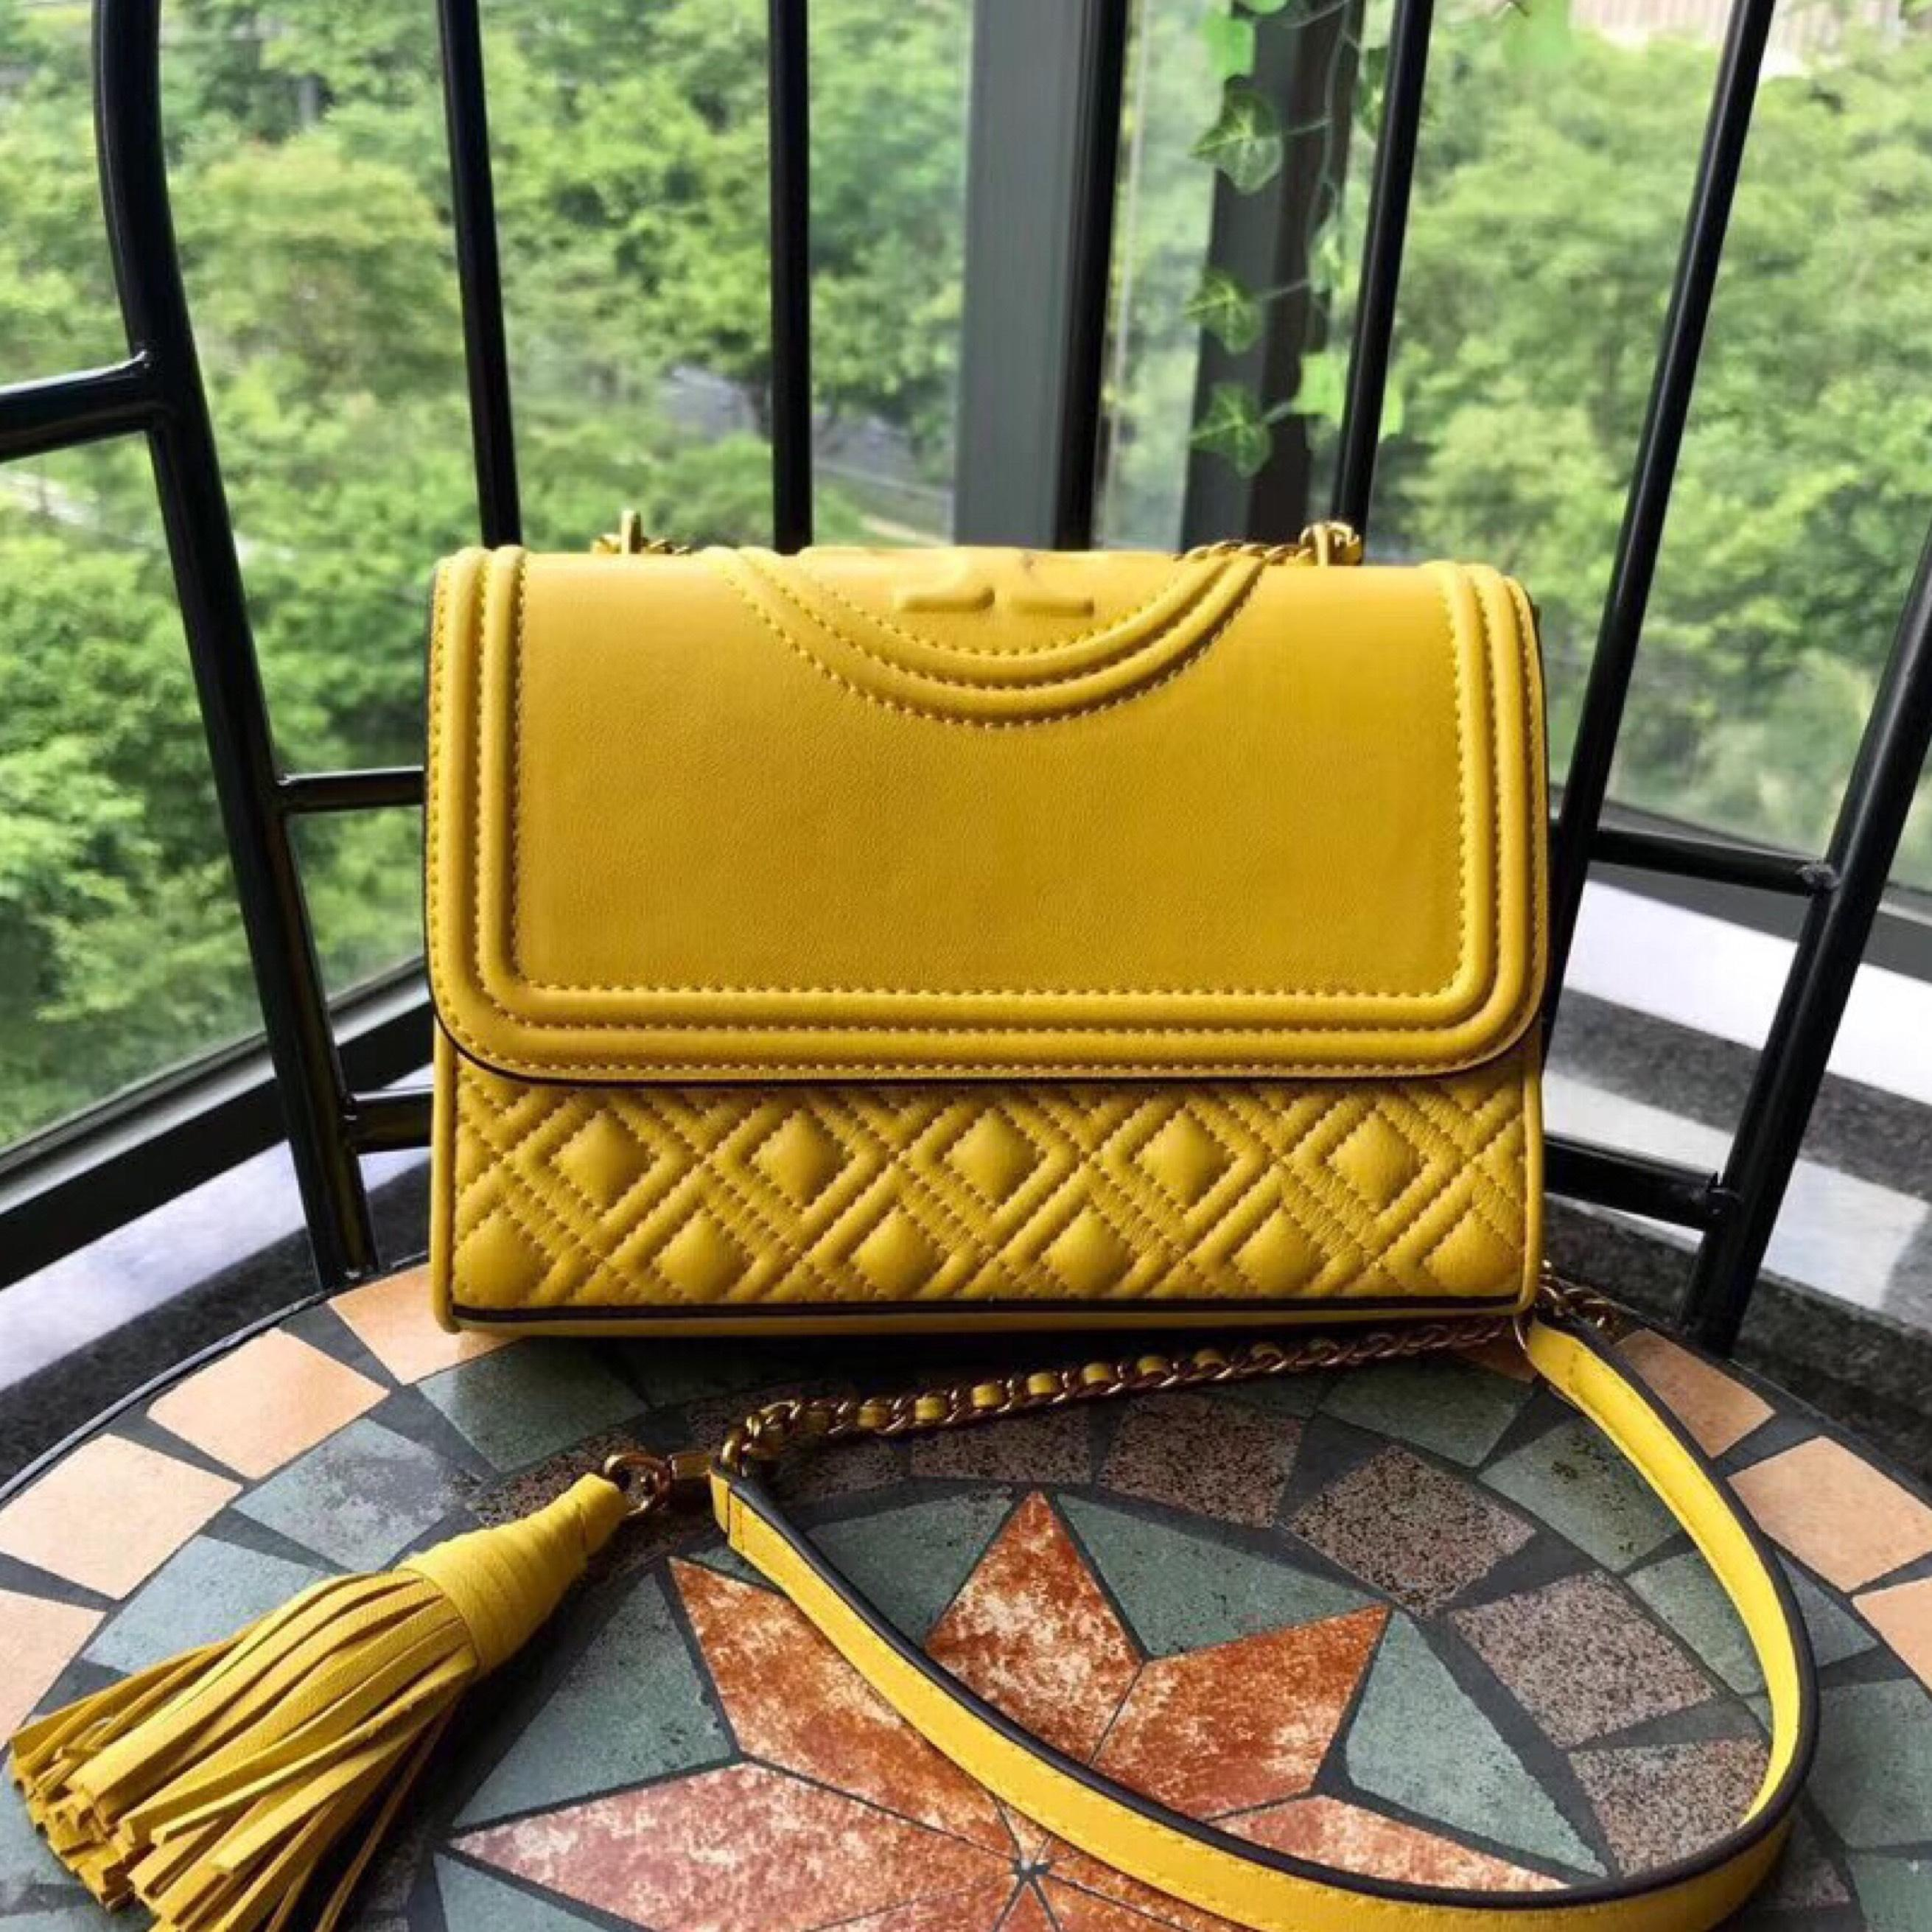 「TORY BURCH Fleming Quilted Leather Small Convertible Shoulder Bag yellow」的圖片搜尋結果